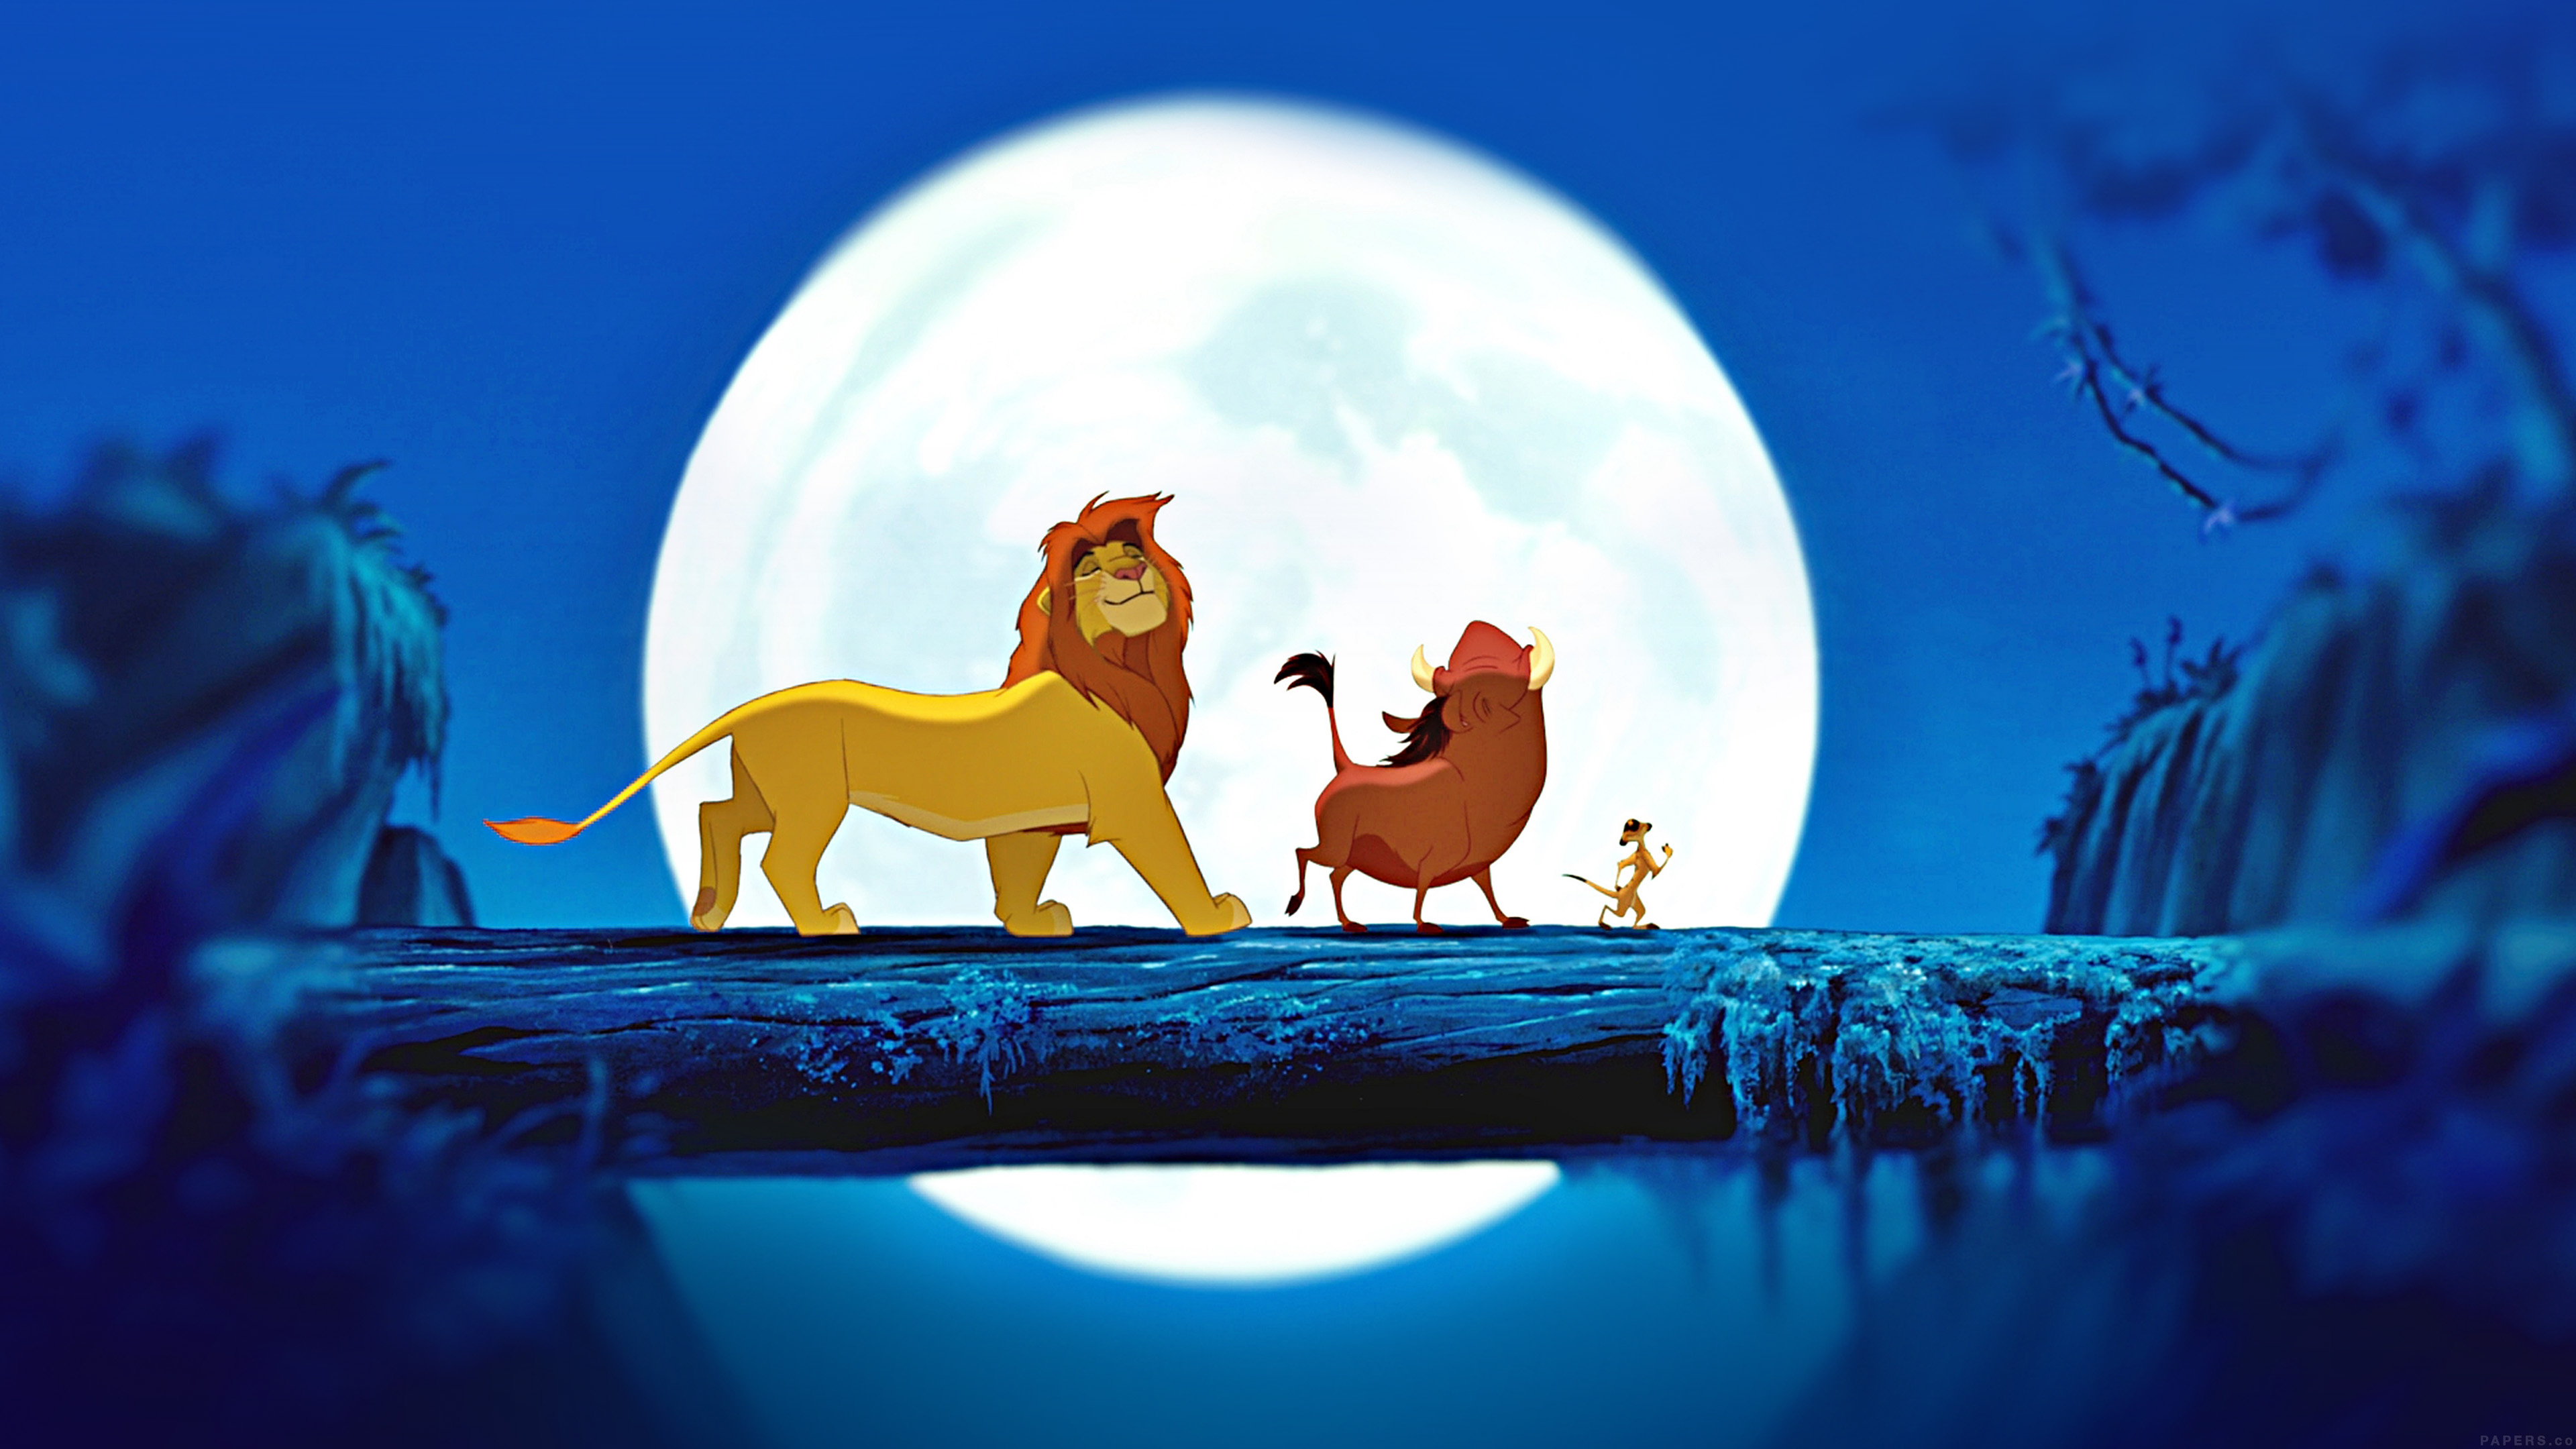 Wallpaper For Desktop Laptop Ak89 Lionking Hakuna Matata Simba Disney Art